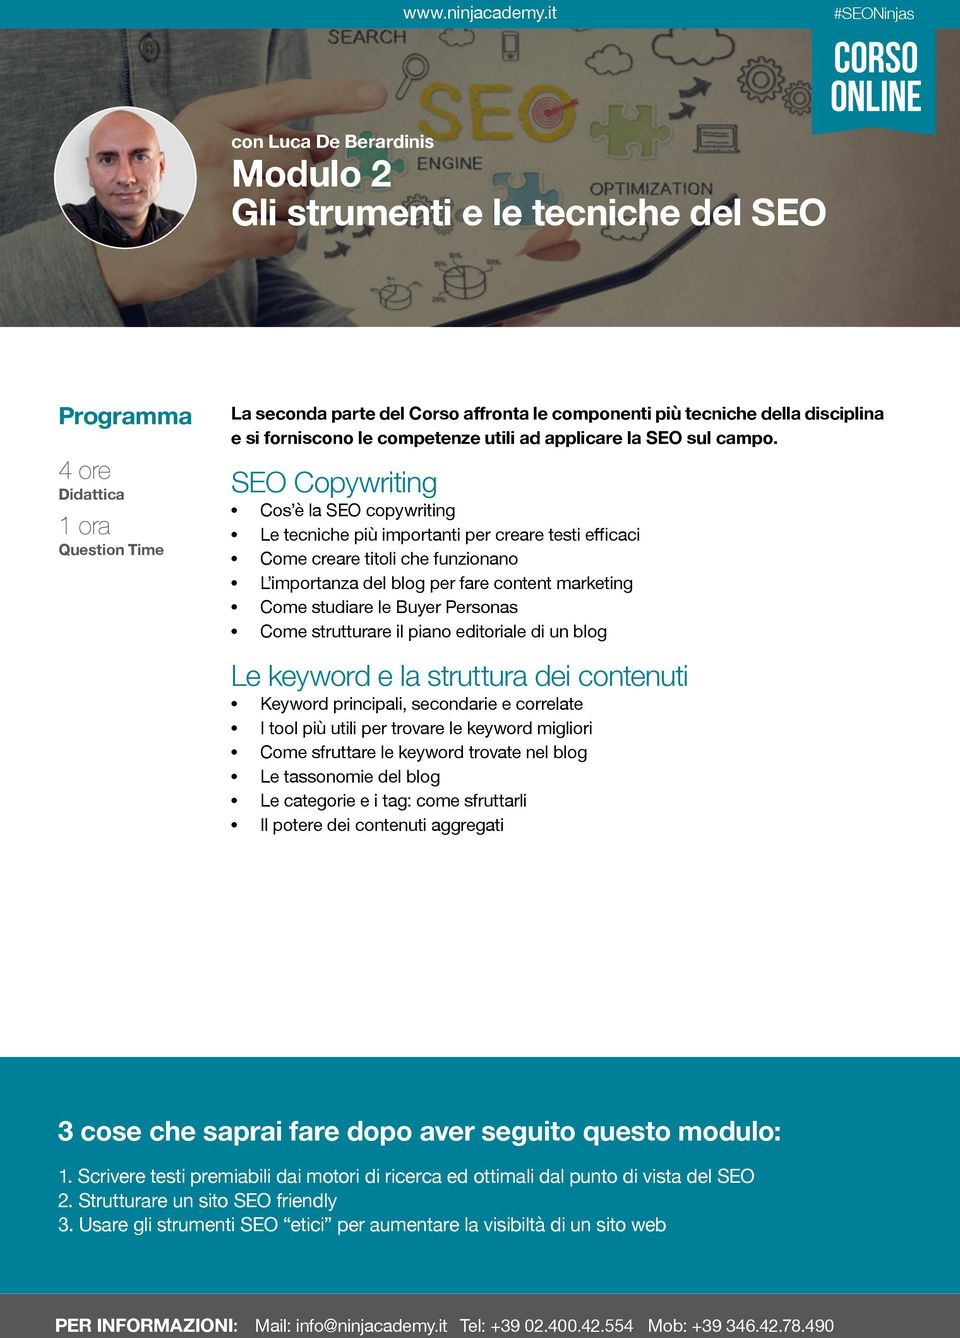 SEO Copywriting Cos è la SEO copywriting Le tecniche più importanti per creare testi efficaci Come creare titoli che funzionano L importanza del blog per fare content marketing Come studiare le Buyer